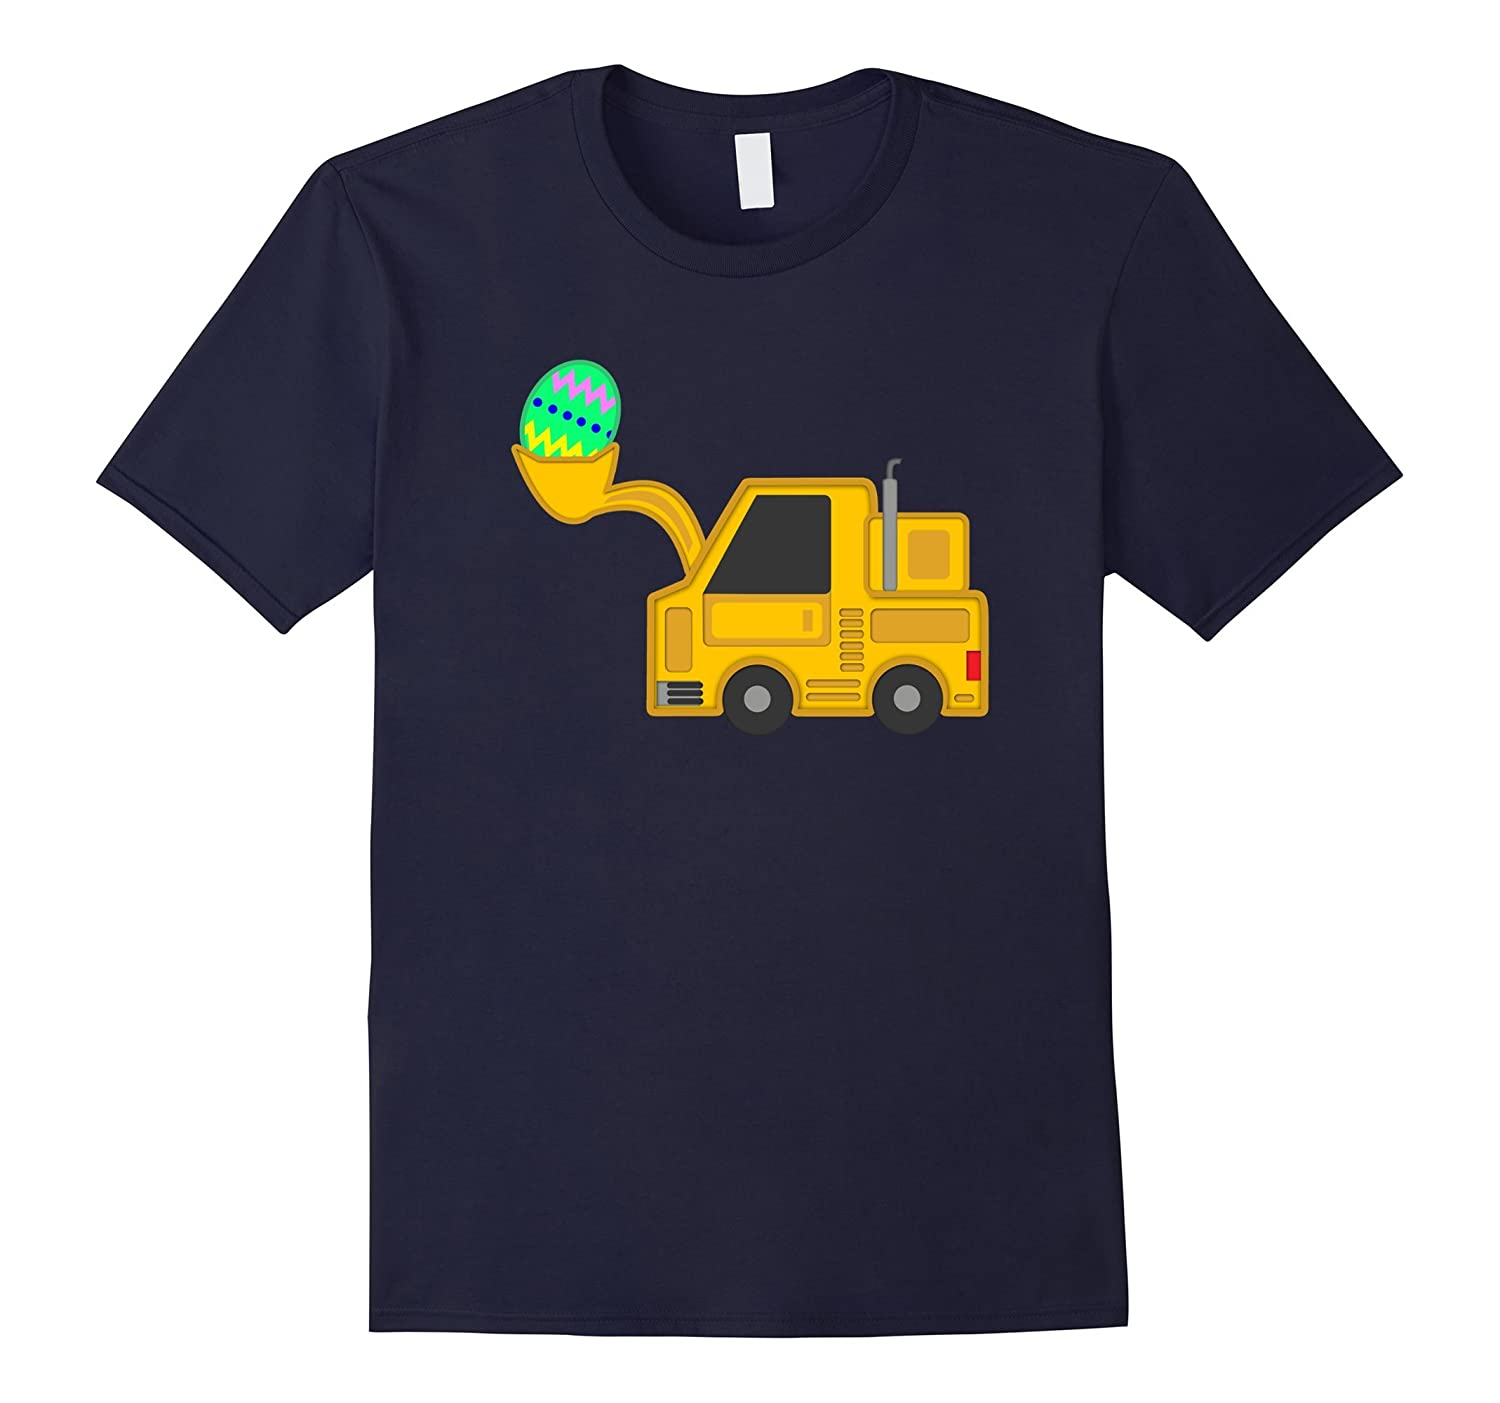 Tractor Truck Car Easter Shirts for Boys Kids Tie Egg Hunt-CD